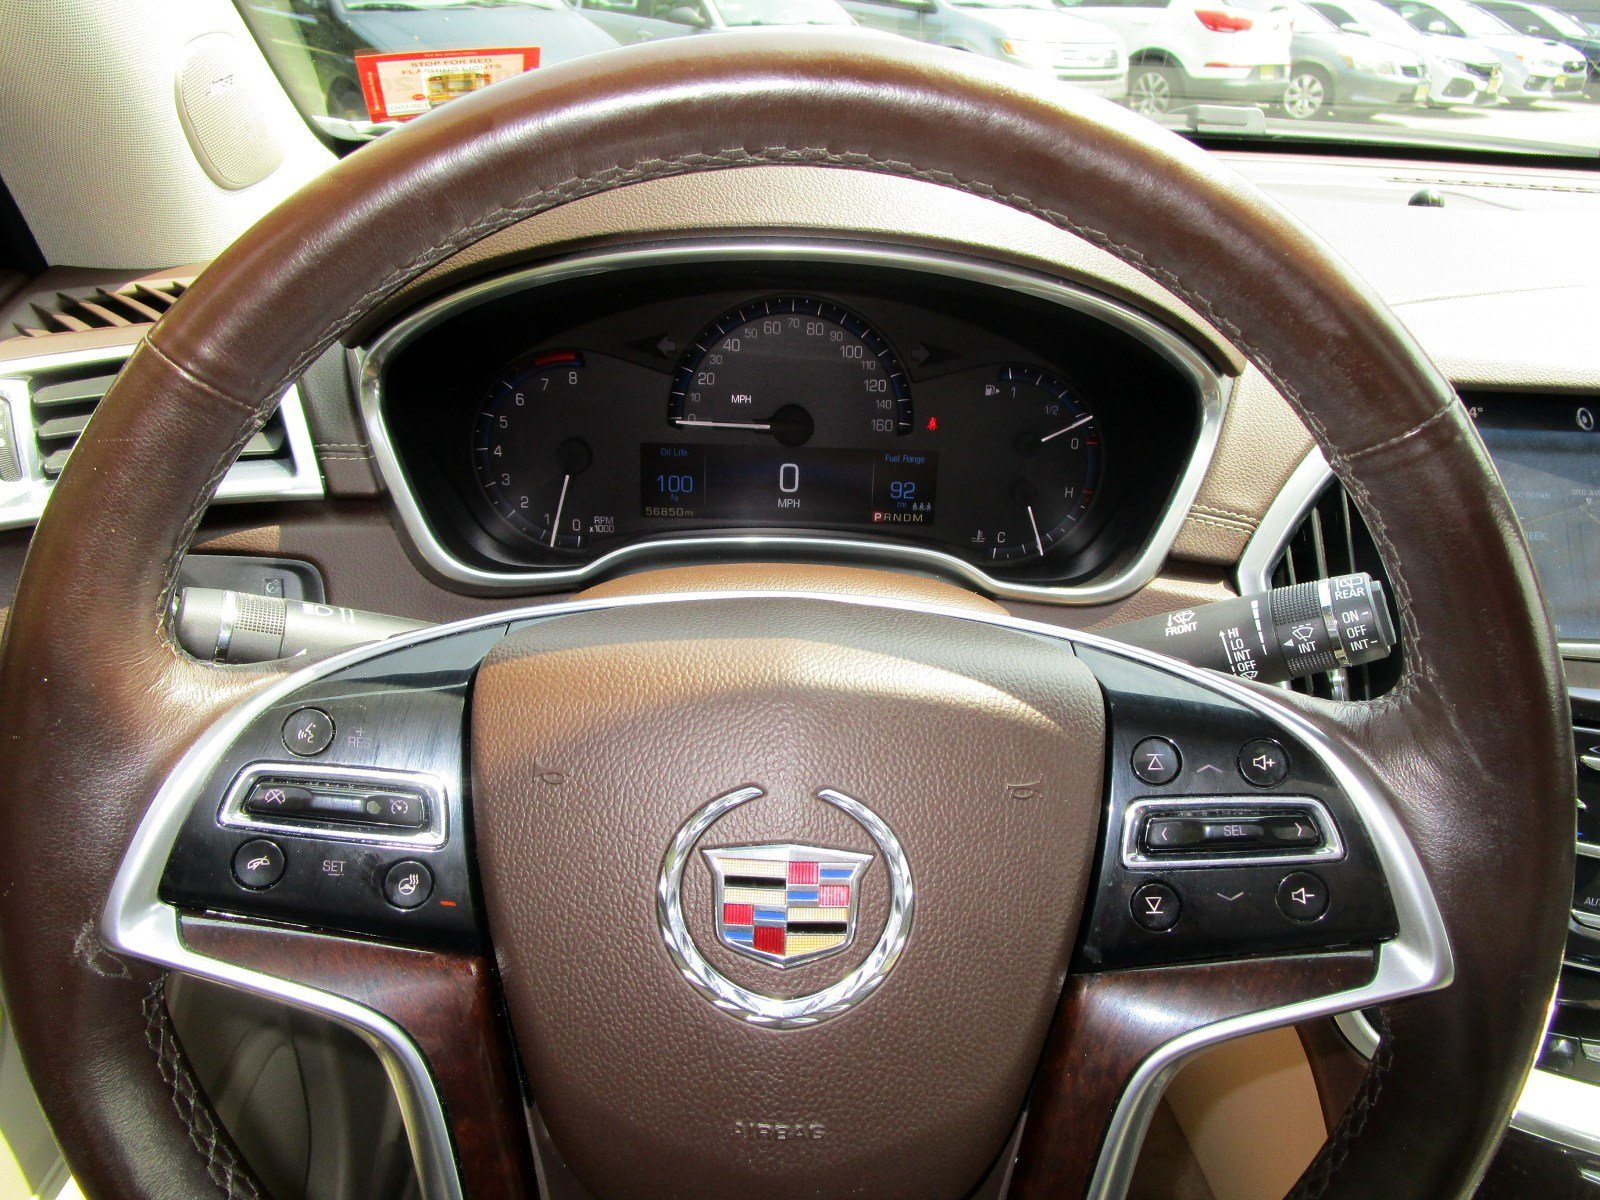 Used 2014 Cadillac SRX Luxury Collection For Sale in Cape May County, NJ |  VIN: 3GYFNBE31ES528246